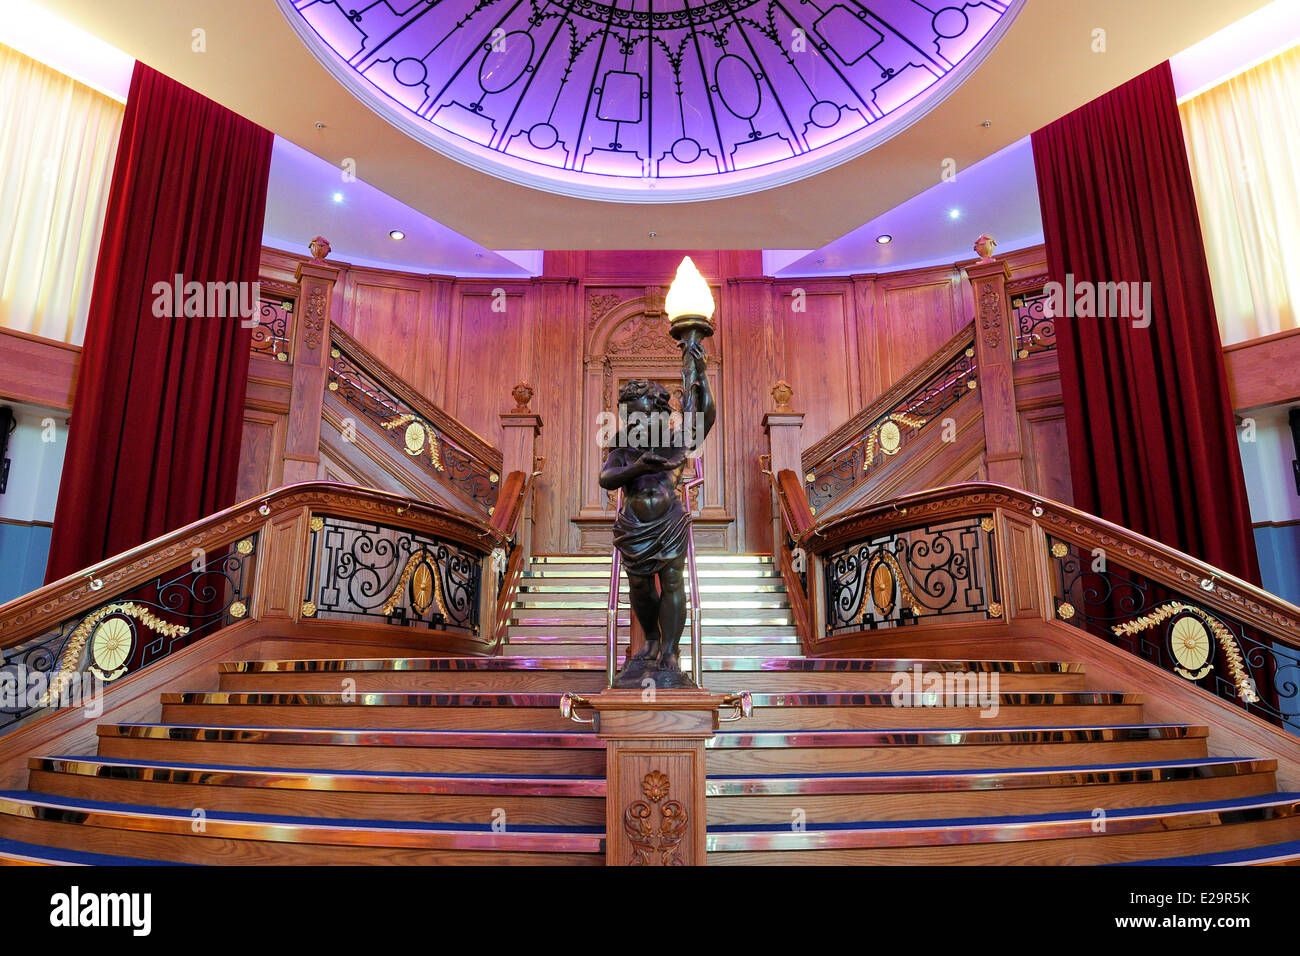 United Kingdom, Northern Ireland, Belfast, docks district of Queen's Island, the Titanic Belfast Experience - Stock Image